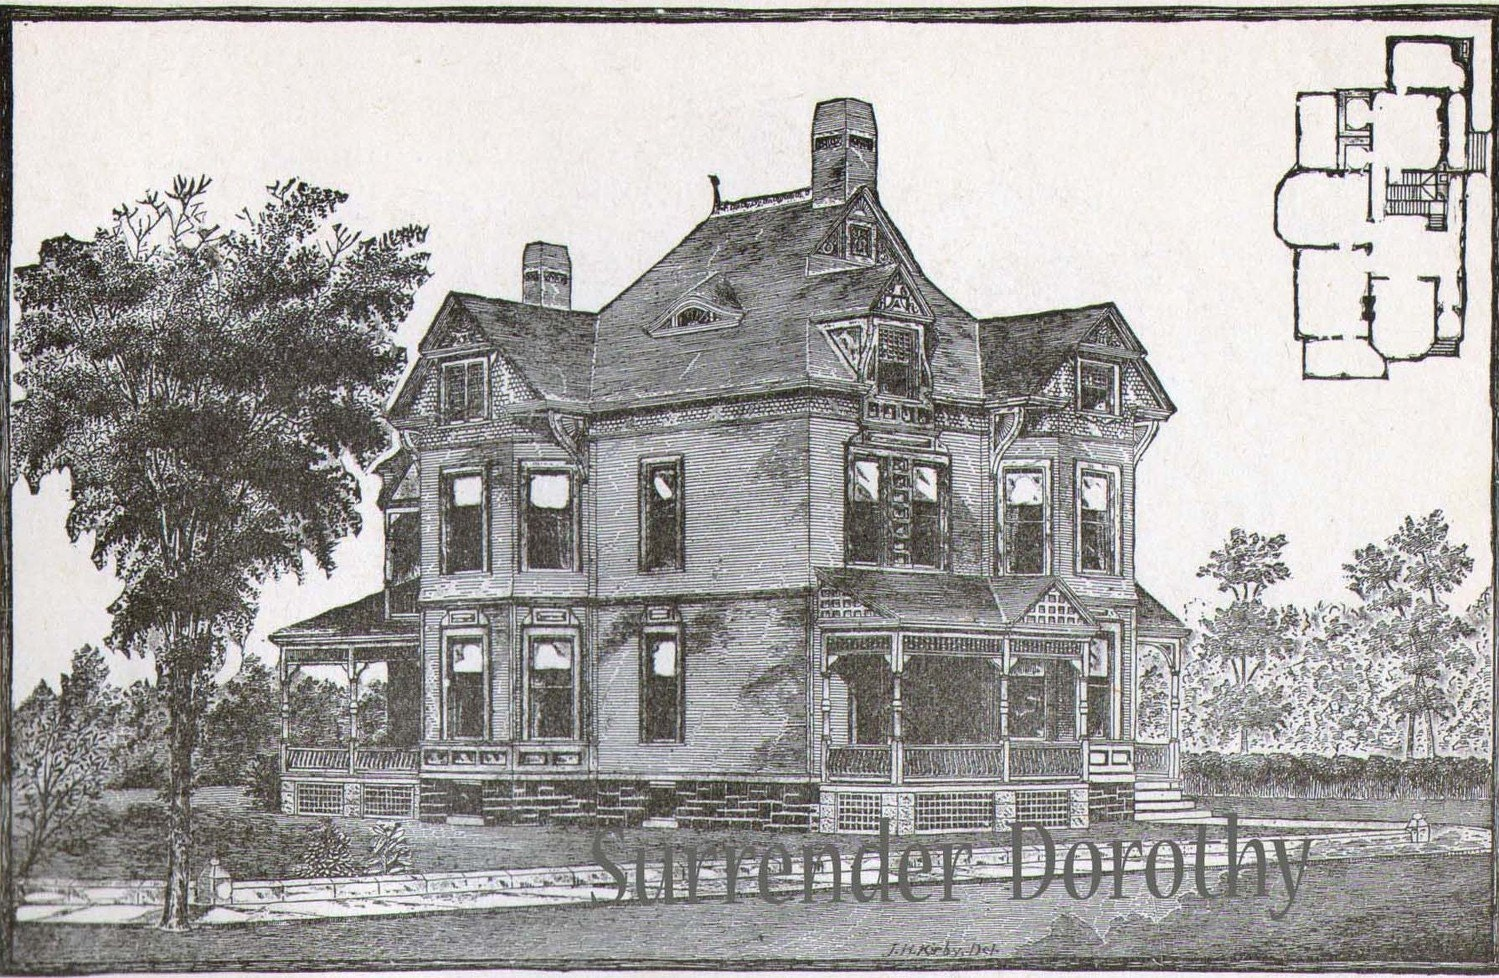 il_fullxfull.190285475  S Victorian House Plans on super luxury southern house plans, historic house plans, old shotgun house plans, 1800s country house plans, small bungalow open floor house plans, 1800s victorian bathroom, victoria house plans, 1800s victorian homes, antique house plans, home style craftsman house plans, barn house plans, 1940 sears house plans, tudor style homes house plans, mediterranean house plans, 1800s mansion plans, small gothic house plans, 1800s victorian fireplaces, lighthouse house plans, 1800s plantation house plans, 1800s style house plans,